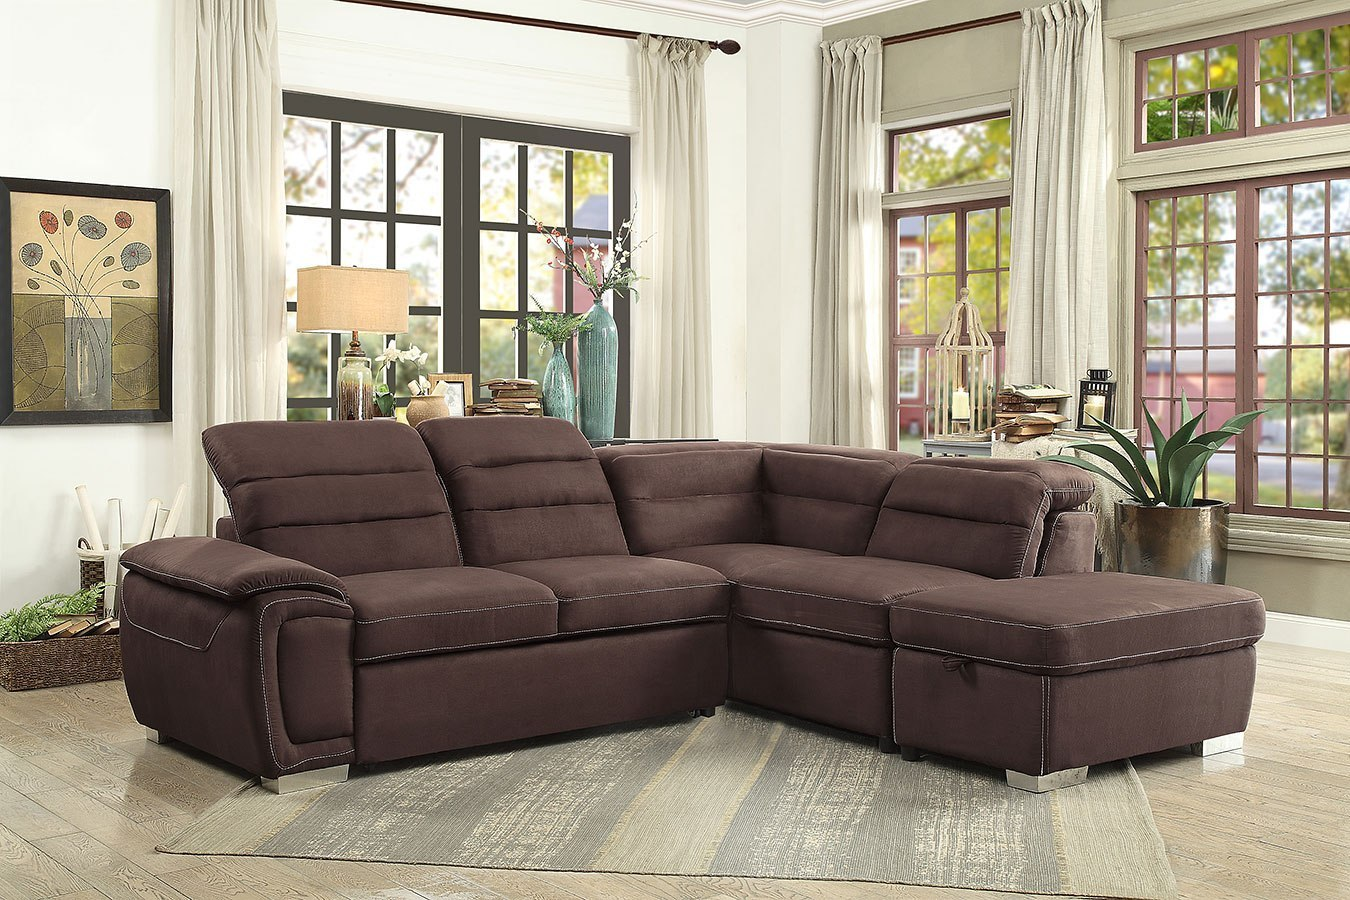 Picture of: Platina Sectional W Pull Out Bed And Storage Ottoman Homelegance Furniture Cart